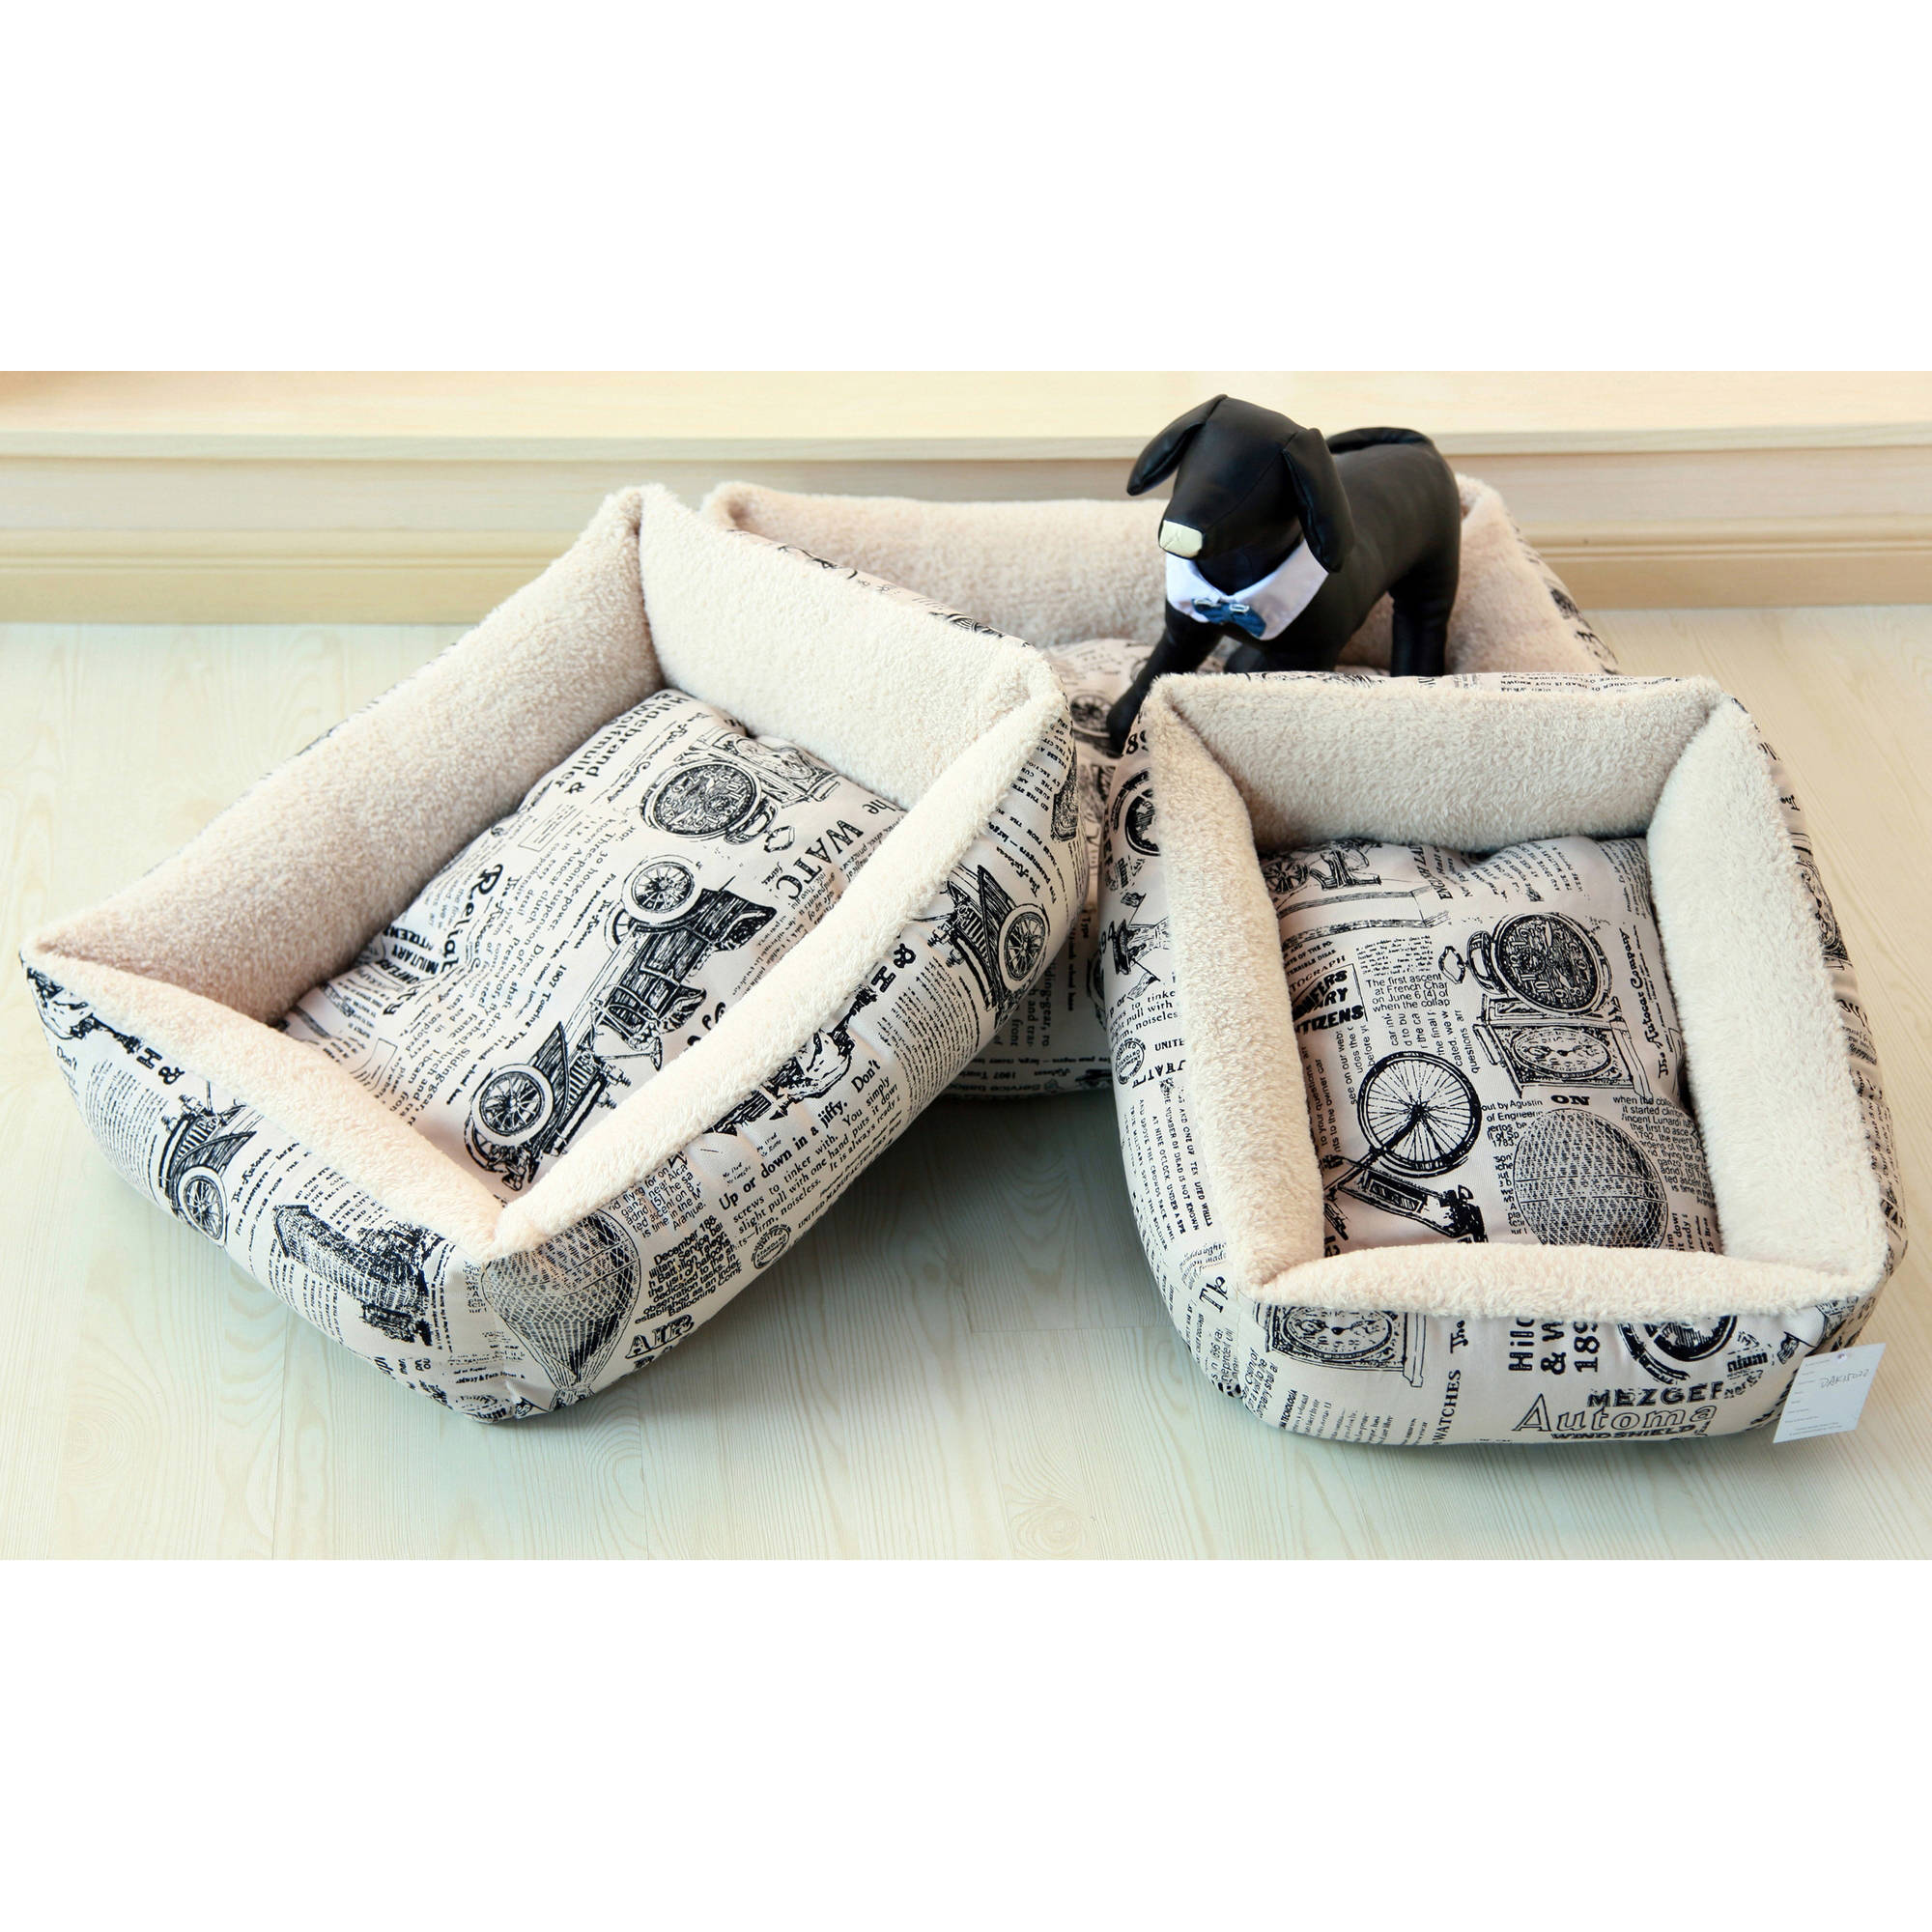 OxGord Slumber Mat Plush Fleece Cushion Pet Bed, 1800's Newspaper Design